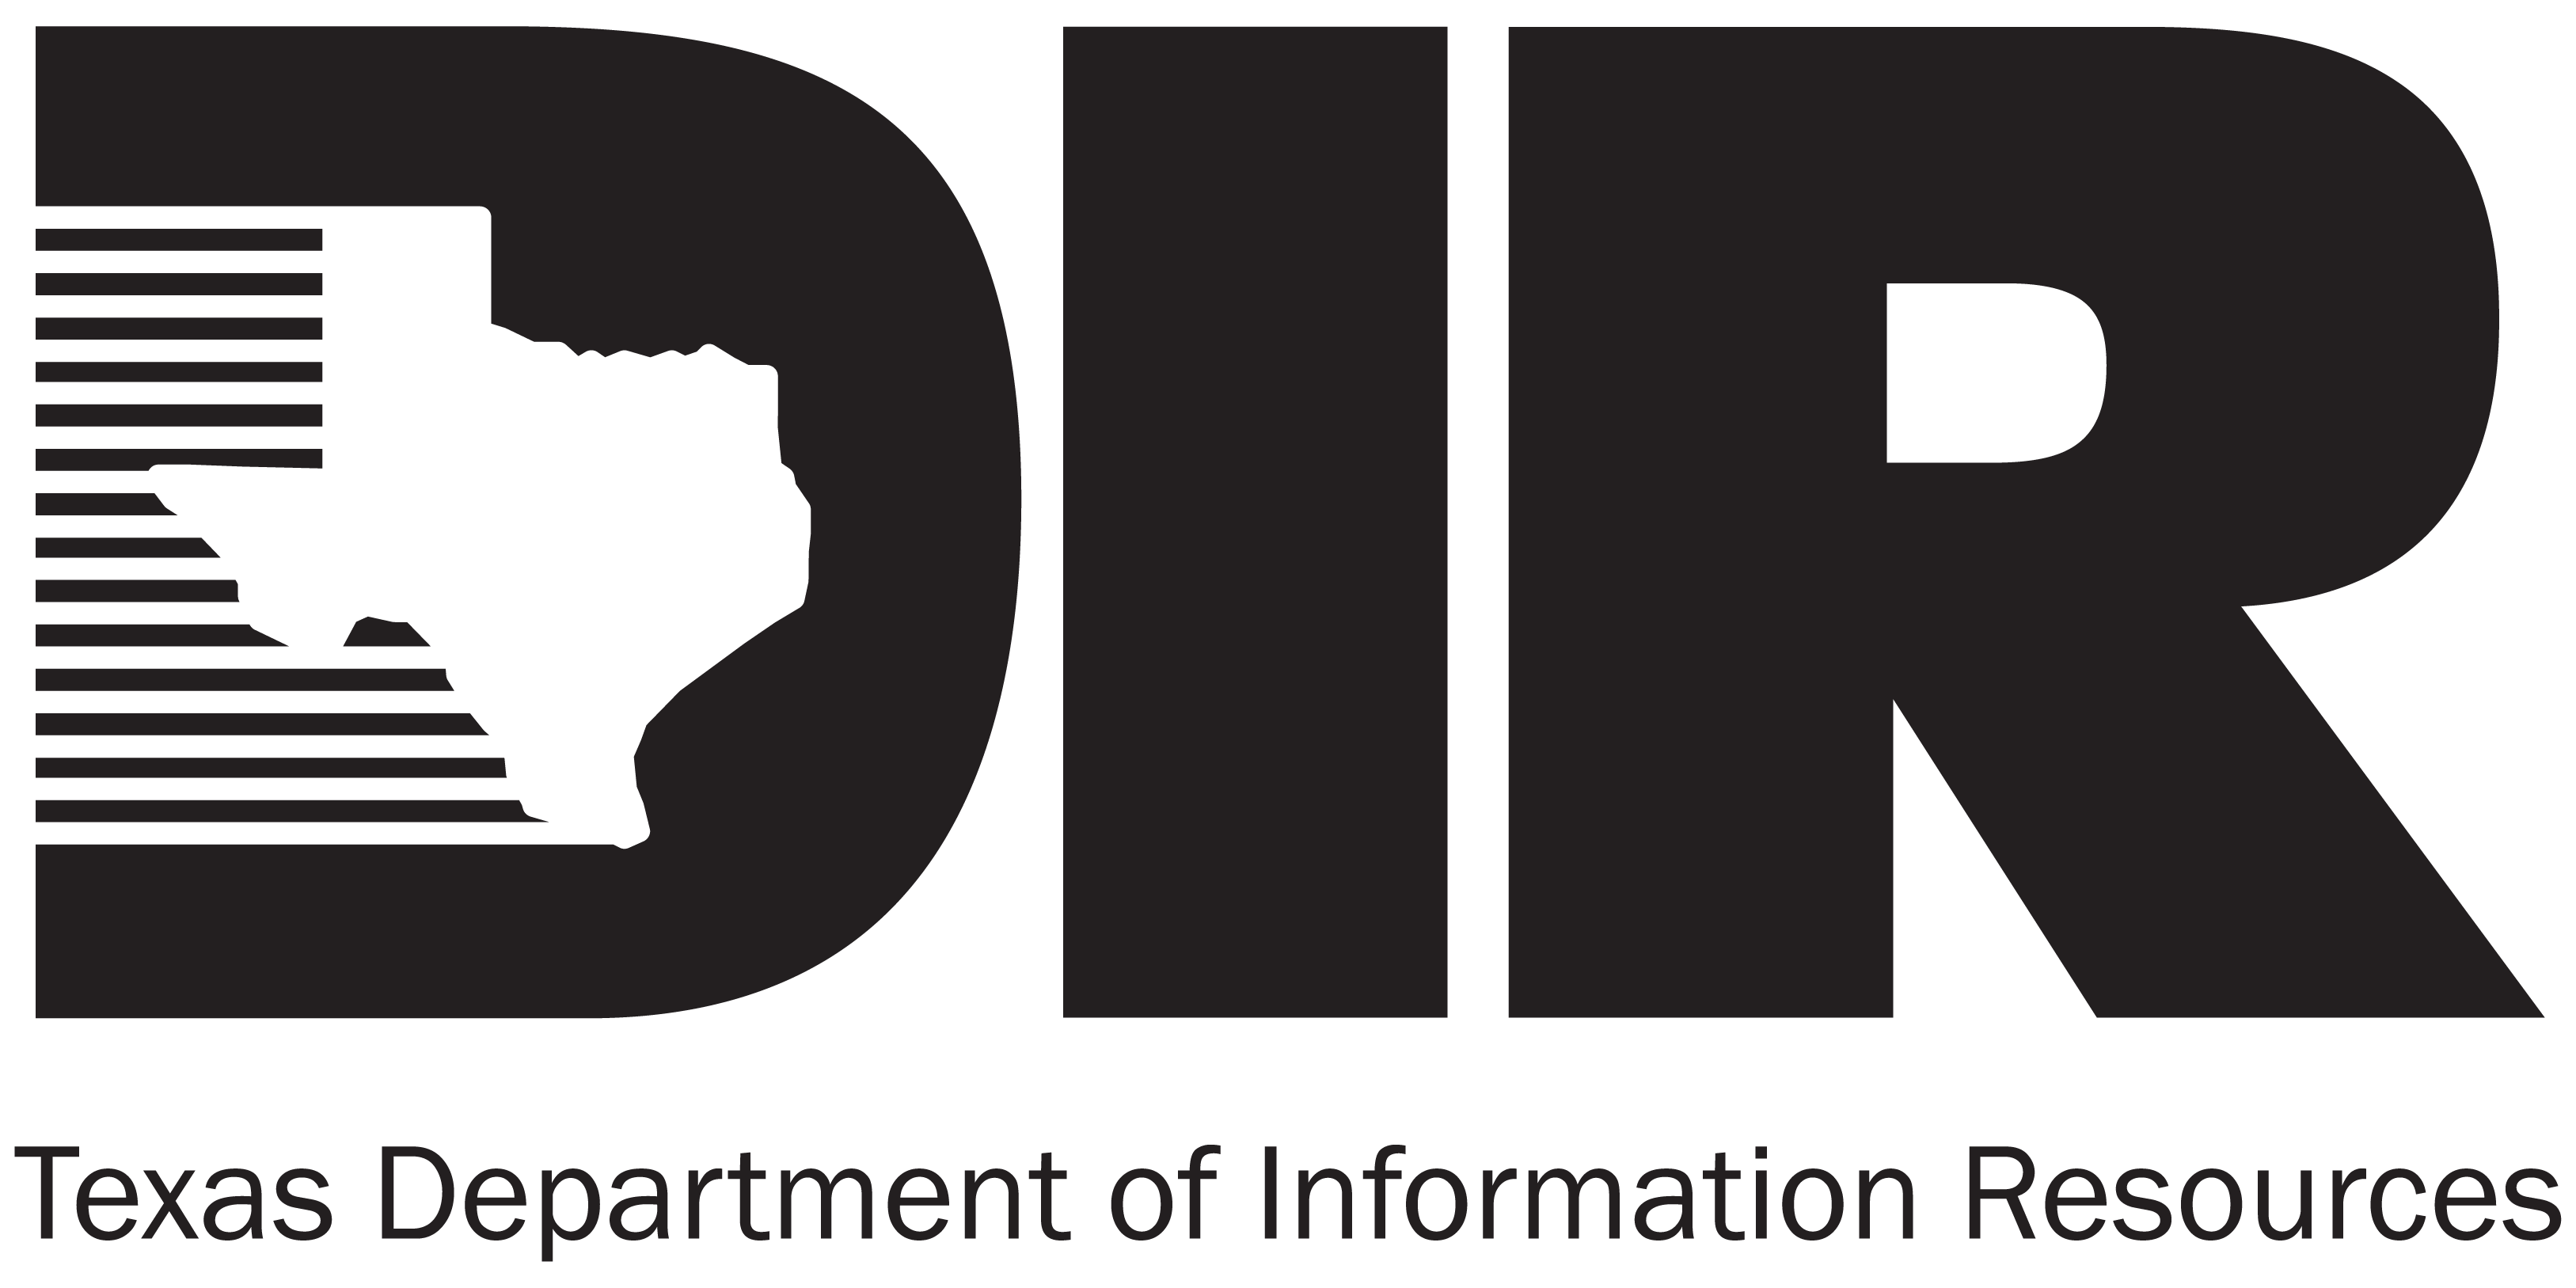 Texas DIR, Department of Information Resources